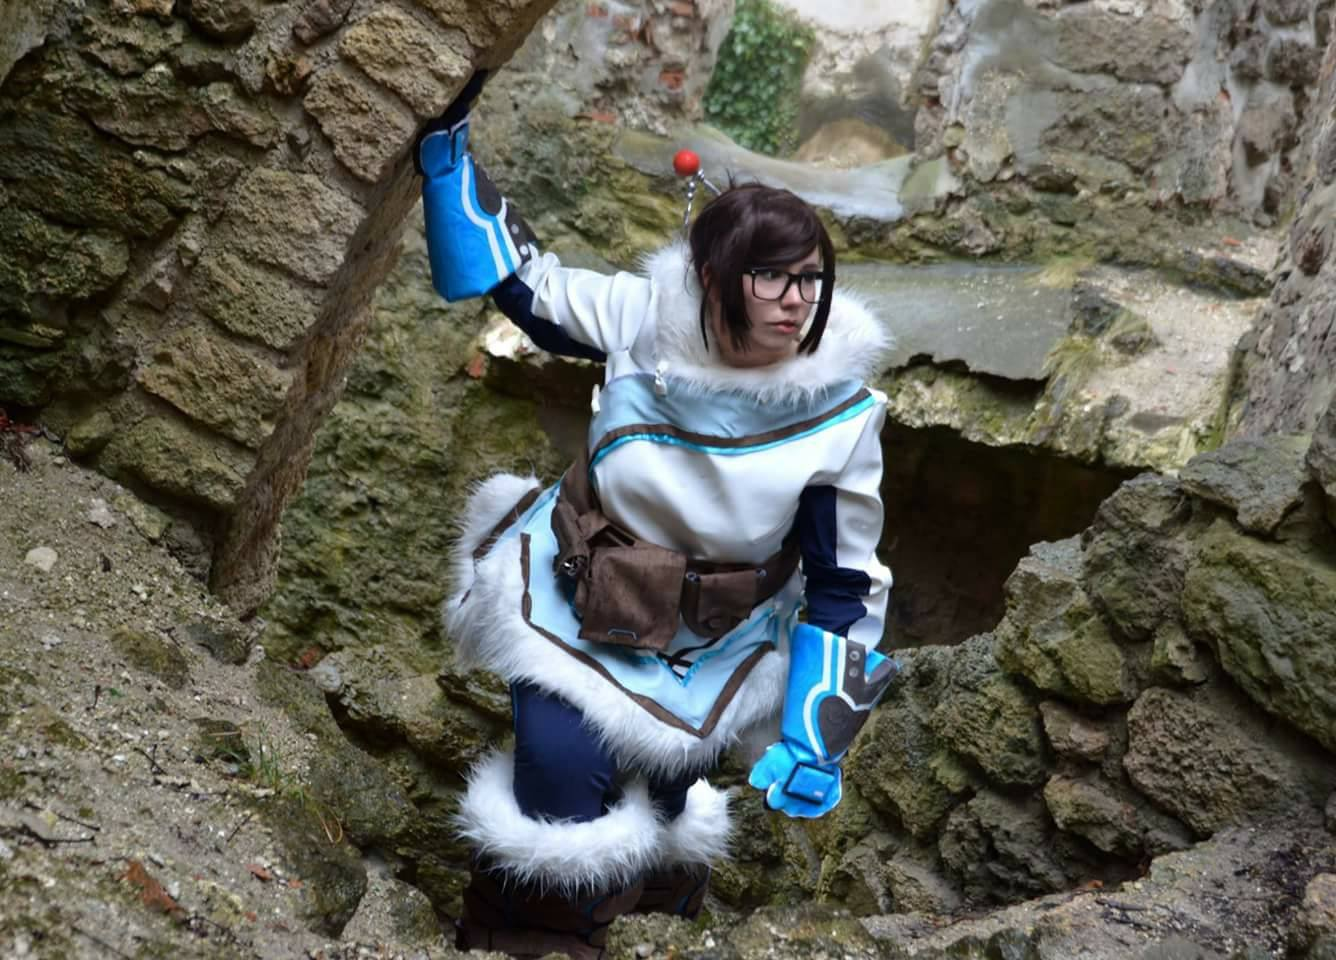 Photo of Giwaku as Mei from Overwatch. Photo taken by MahouWi Cosplay